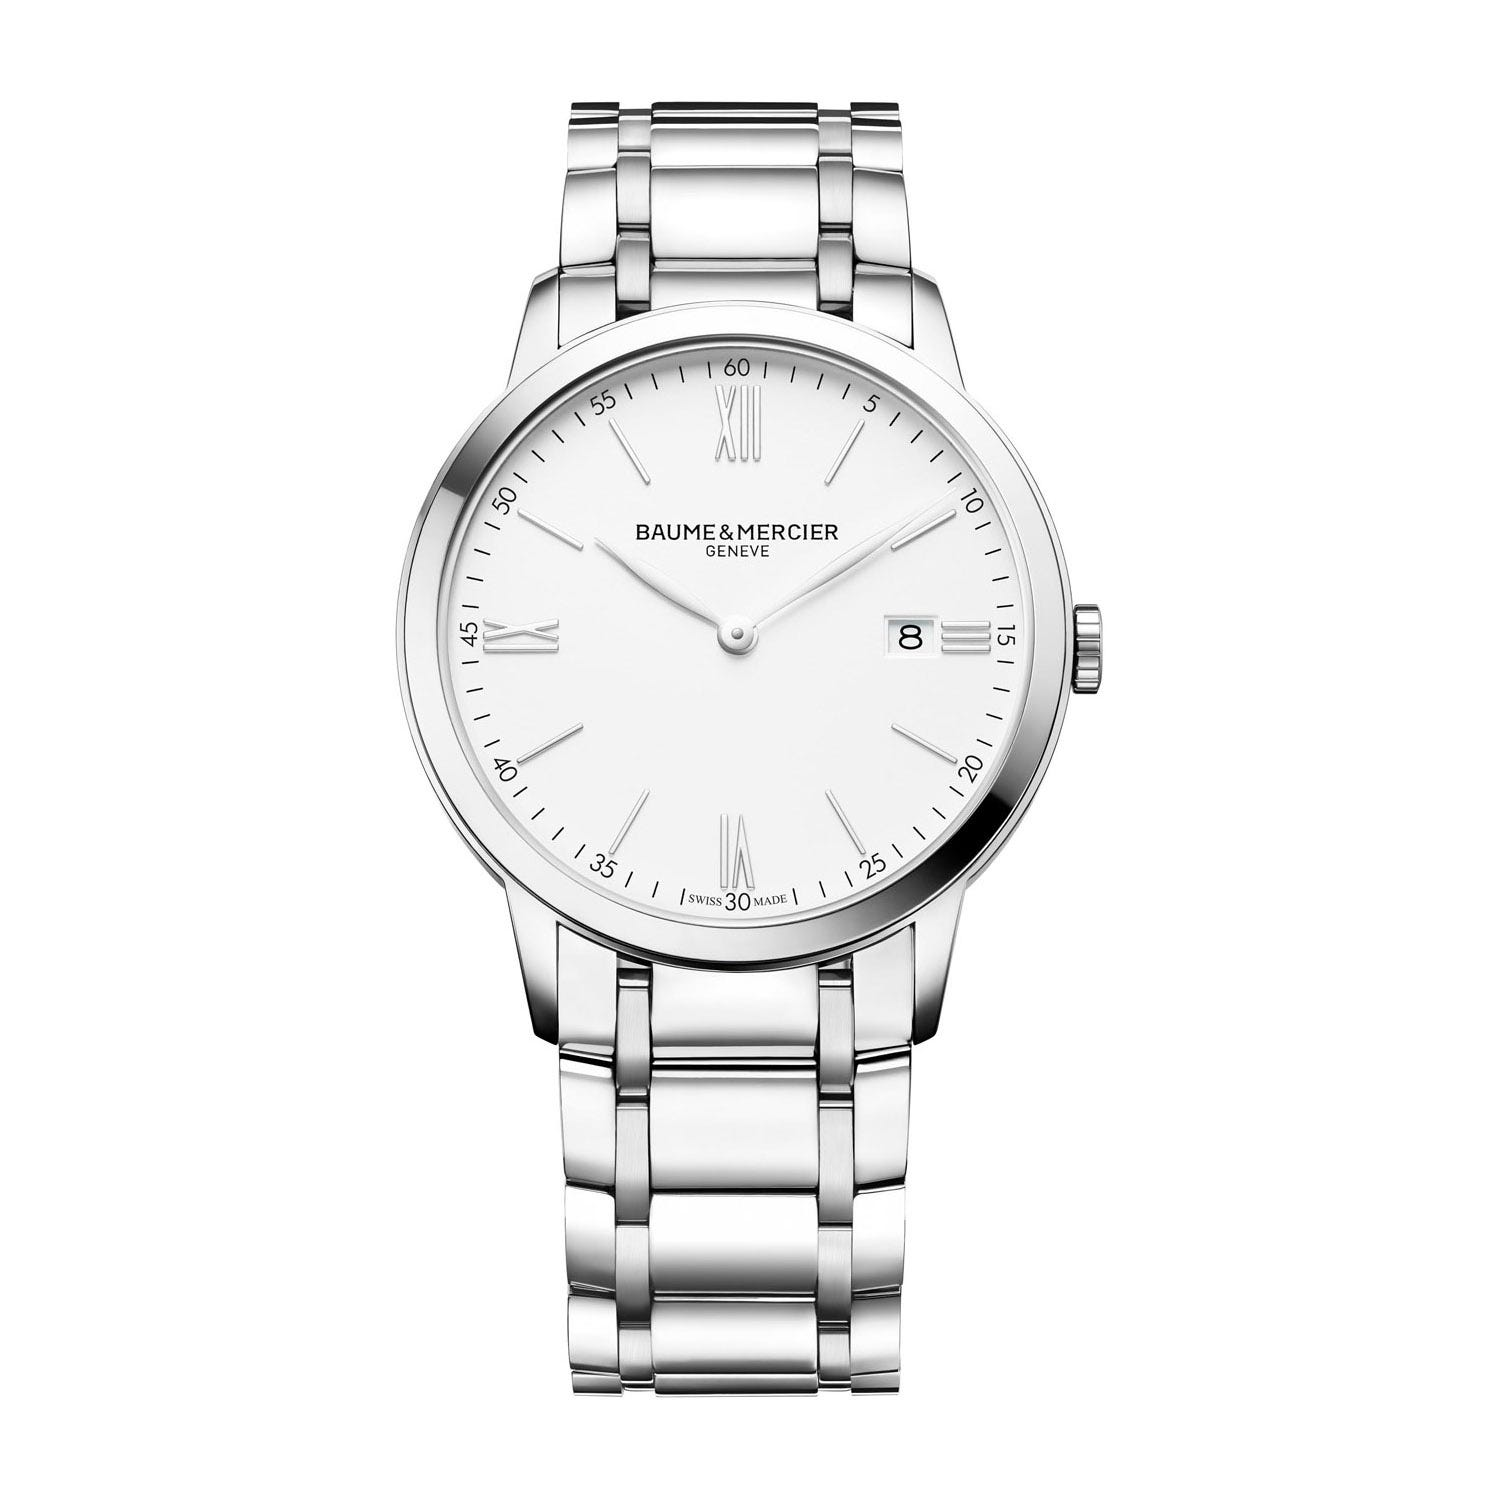 Baume & Mercier Classima White Dial Steel Bracelet Men's Watch